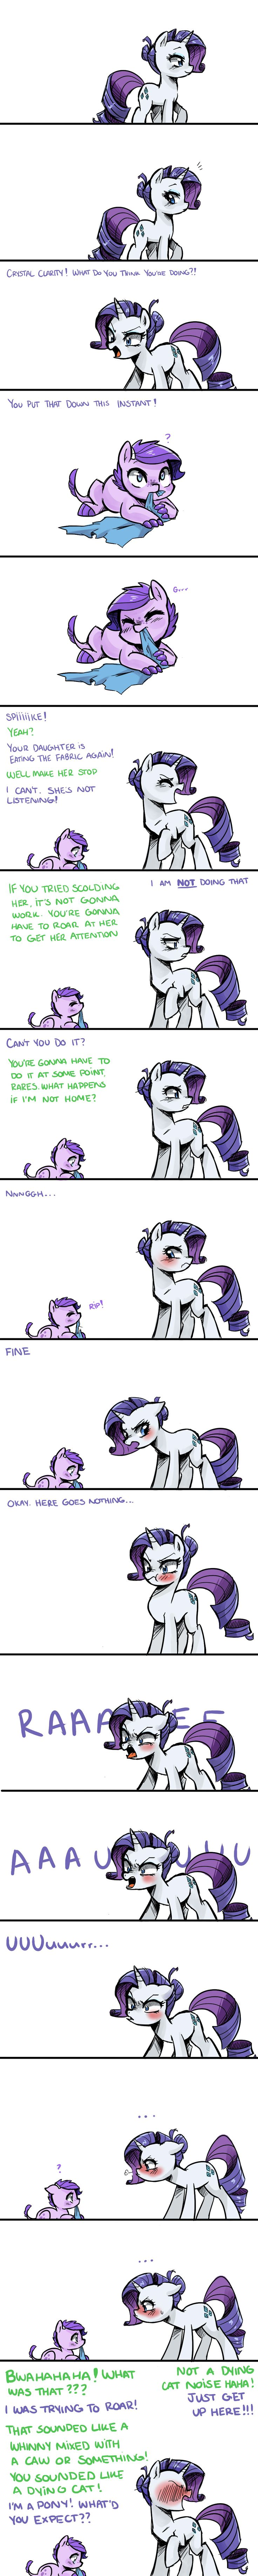 Roaring Rarity by kilala97.deviantart.com on @deviantART. Not a huge my little pony fan, I watched the series with my 8 year old sister though and I've got to say these adult rarity and spike comics by kilala are pretty cute.